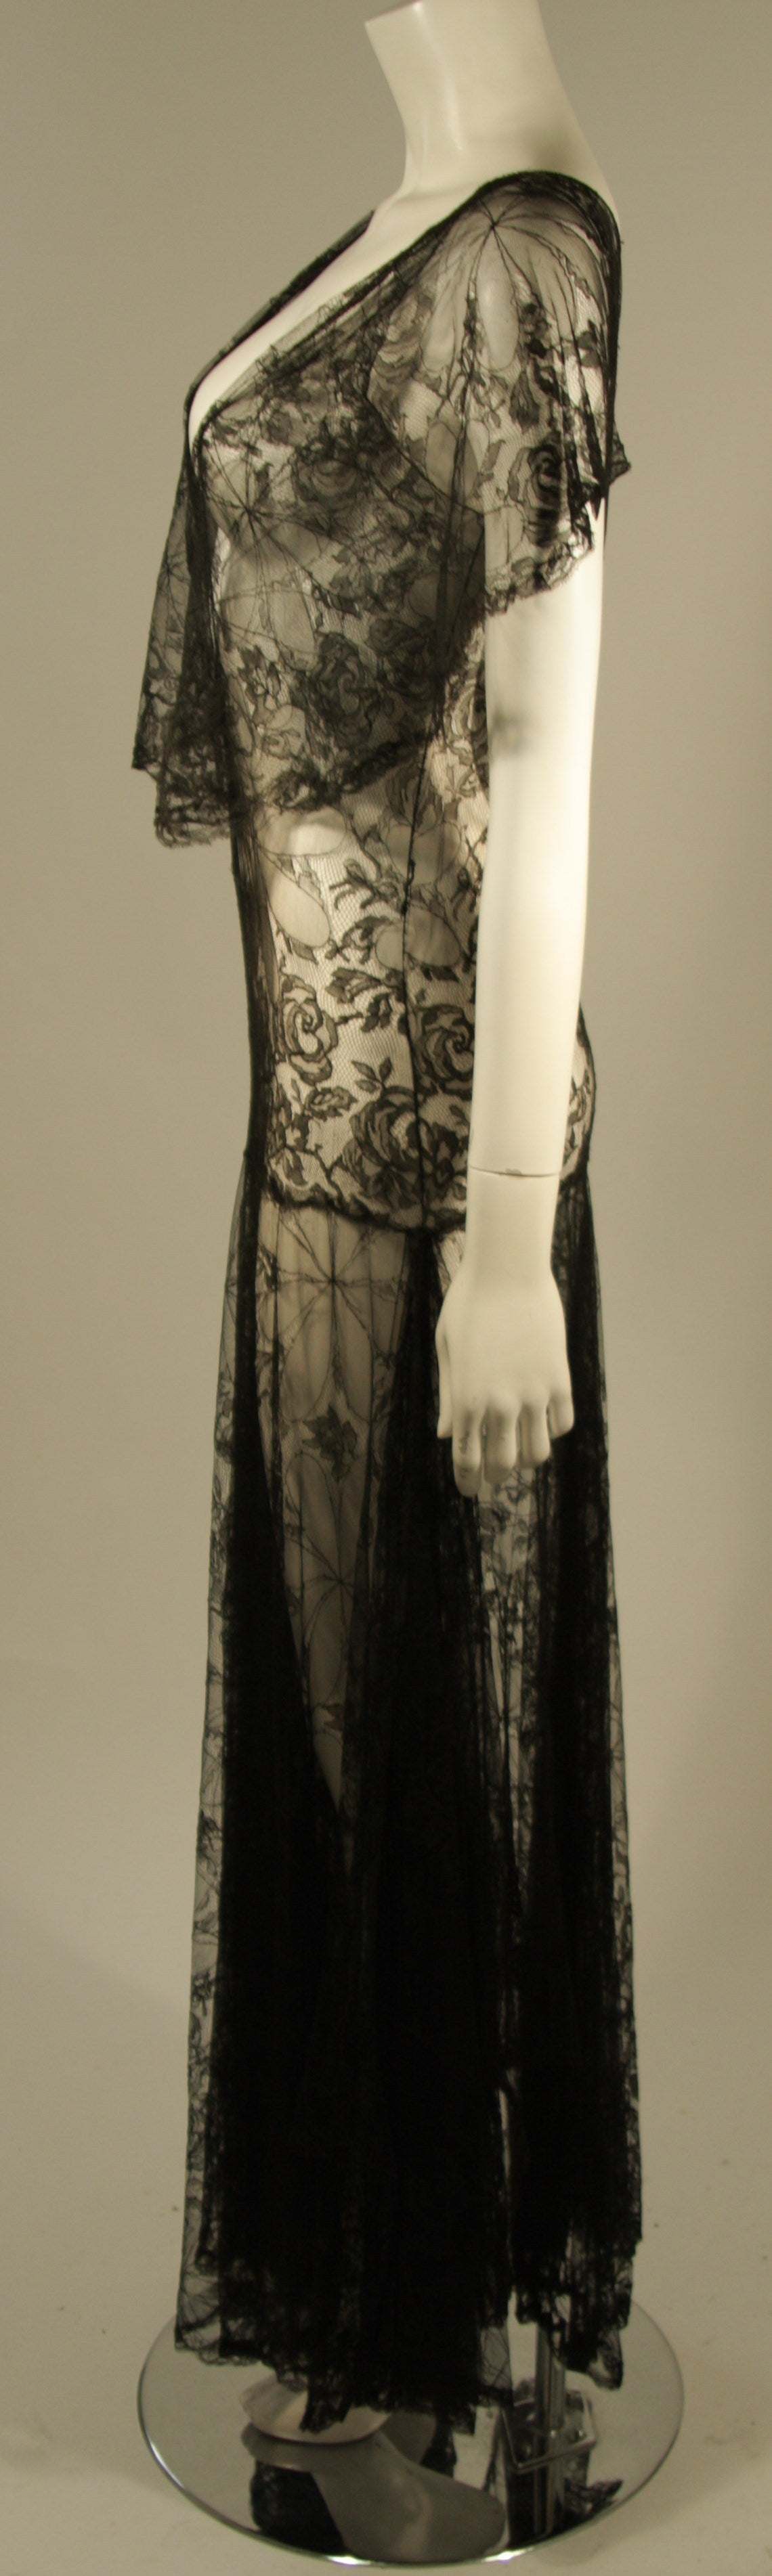 1930's Black French Lace Gown 7